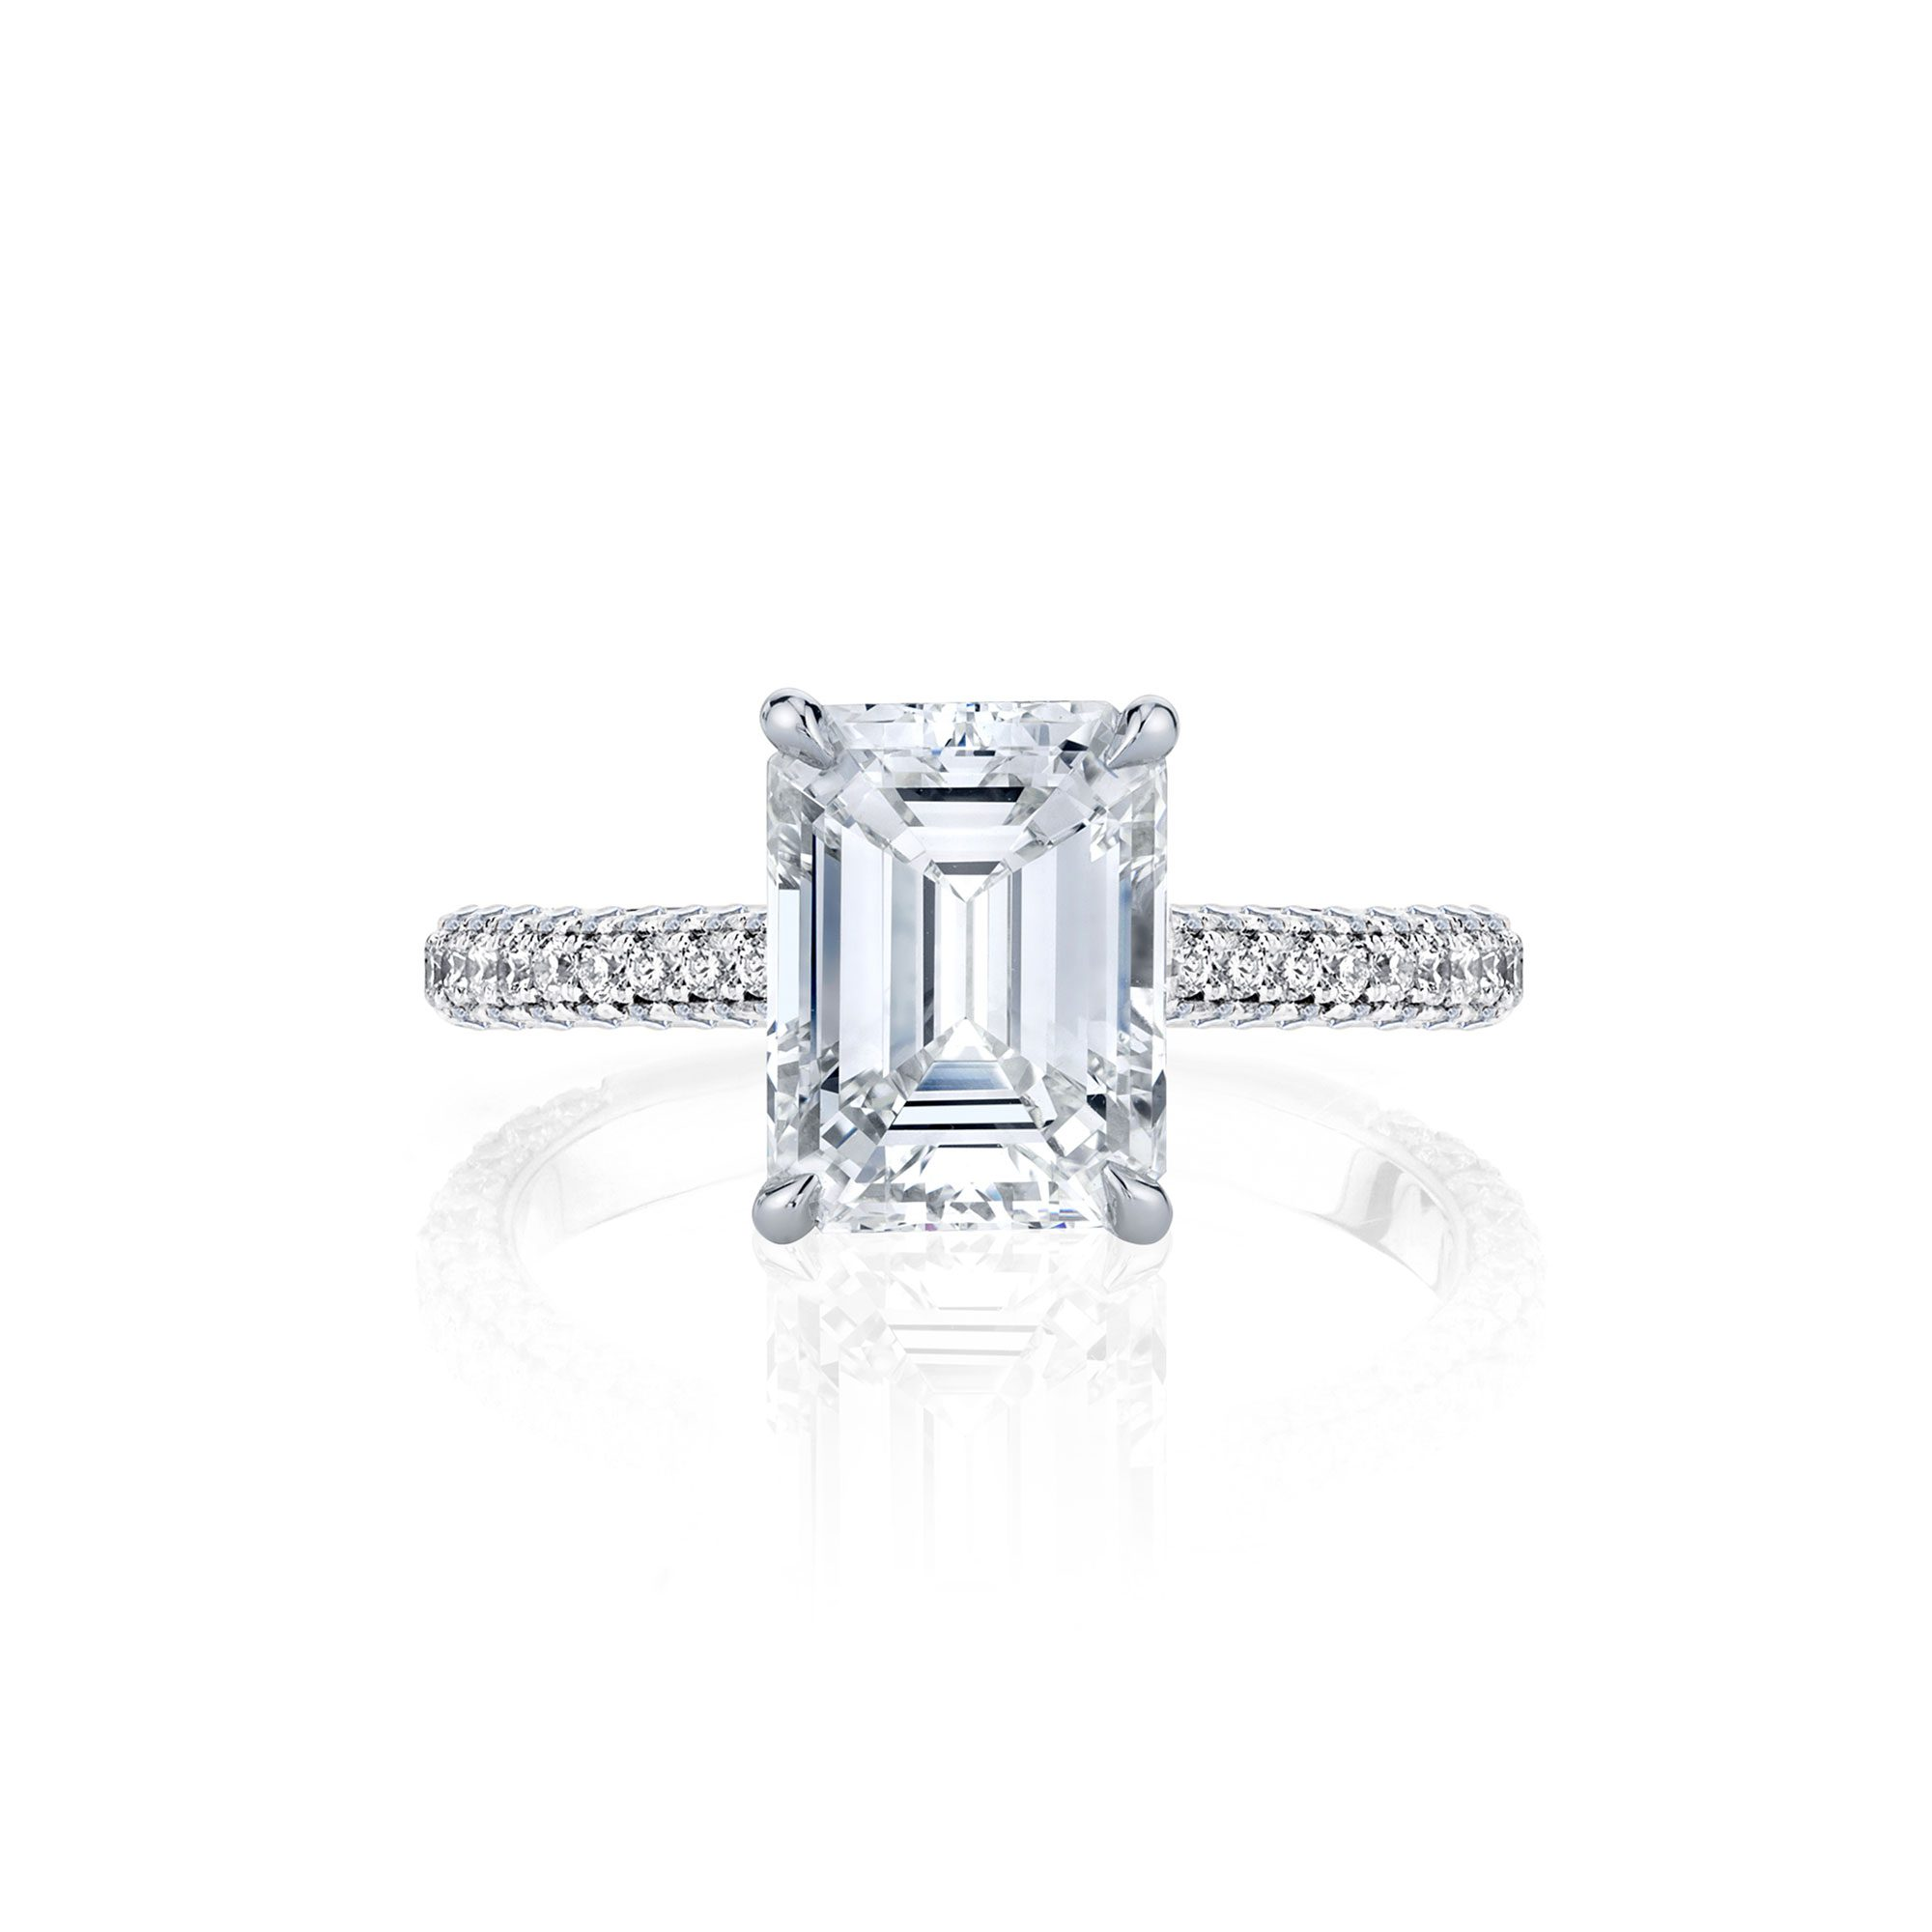 Jacqueline Emerald Cut Lab Grown Diamond Solitaire Engagement Ring Pavé White Gold Band from Oui